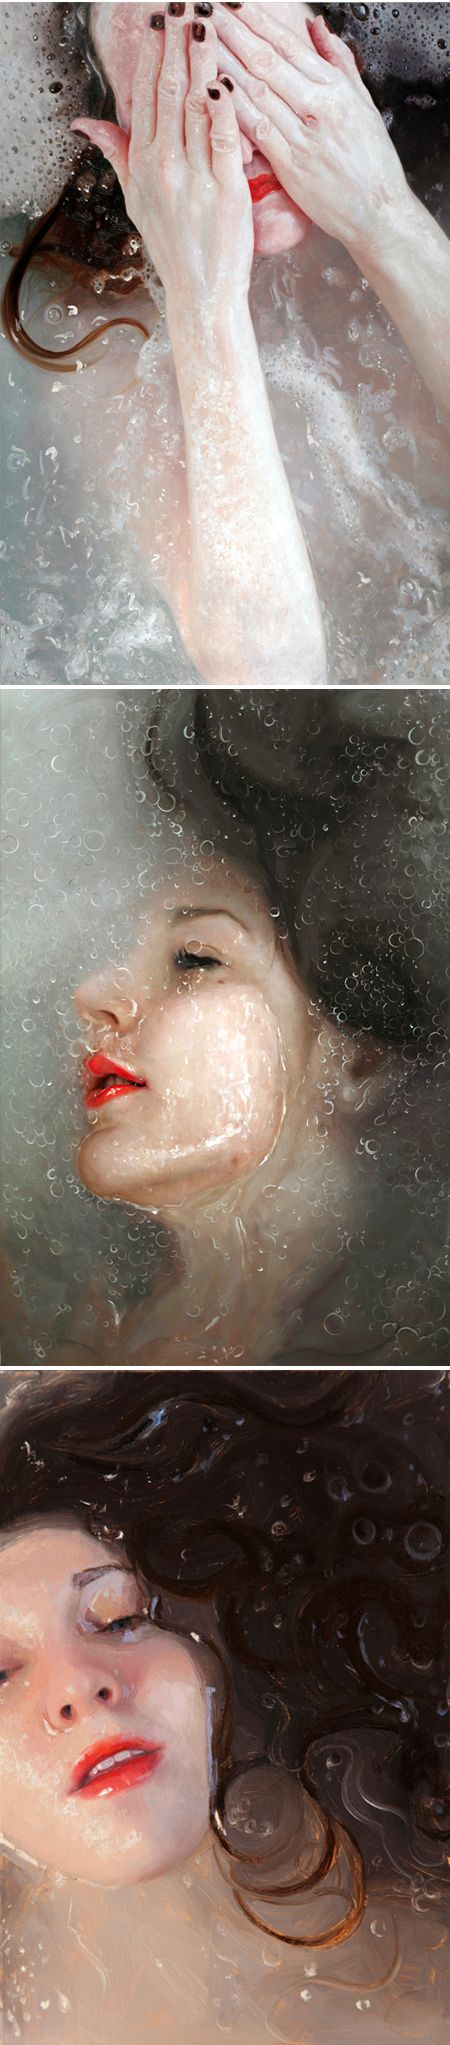 Alyssa Monks: NY based oil painter. Beautiful, realistic and sensitive work.